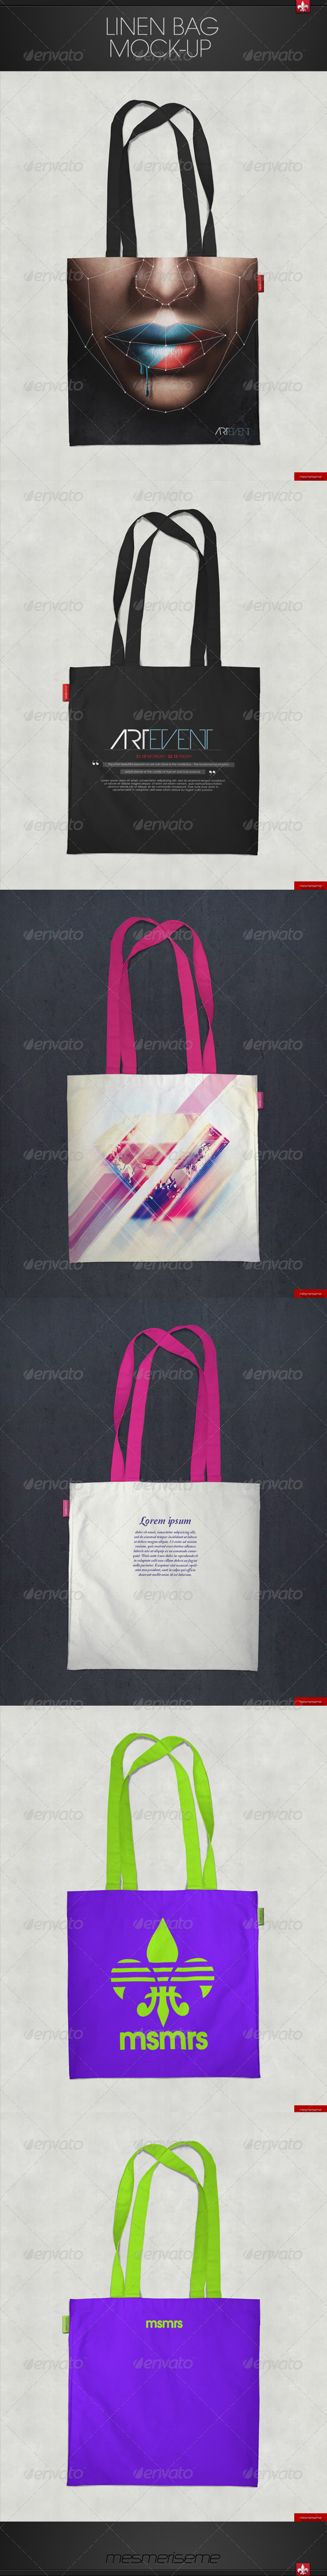 GraphicRiver Linen Bag Mock-up 7261844